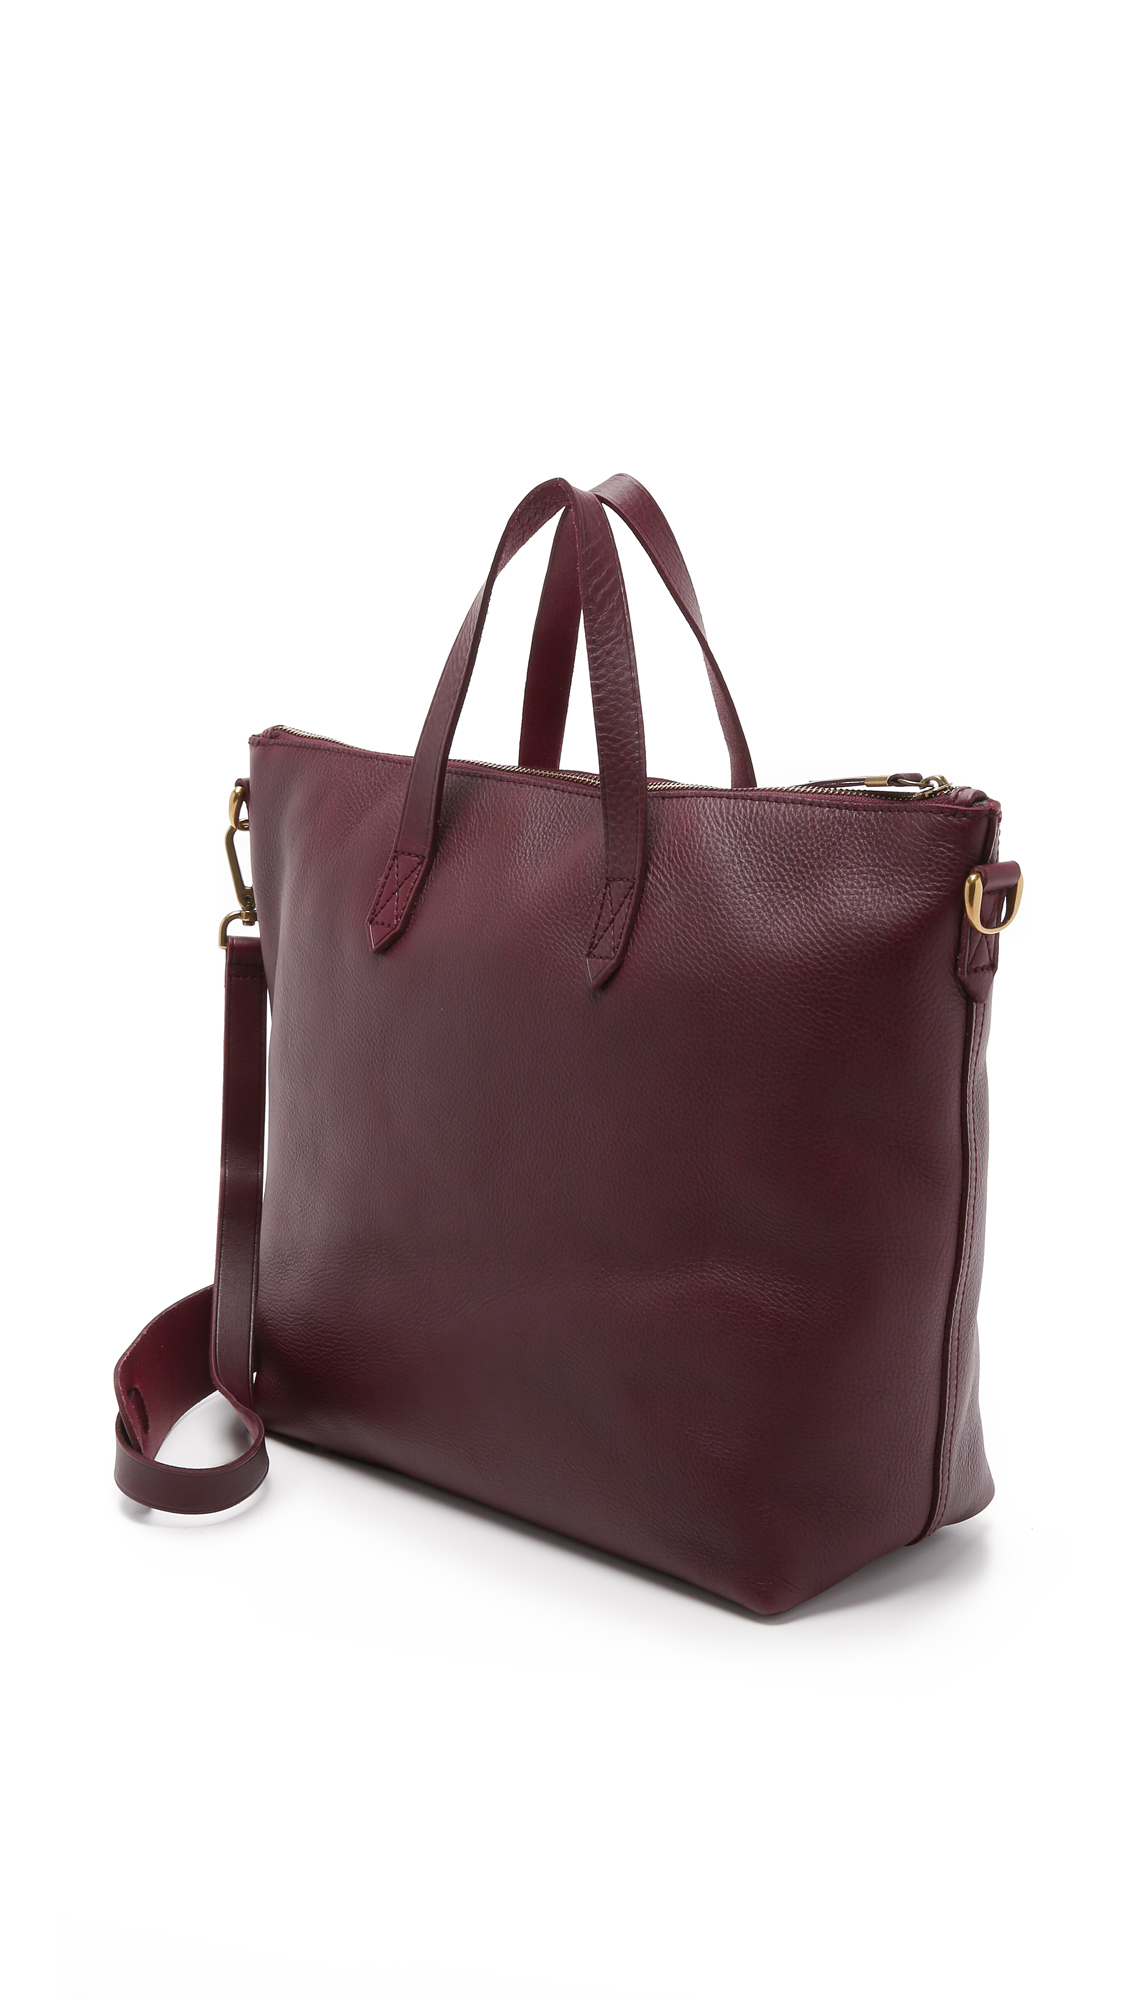 1528f6131a5d Lyst - Madewell The Zip Transport Tote - Dark Cabernet in Red